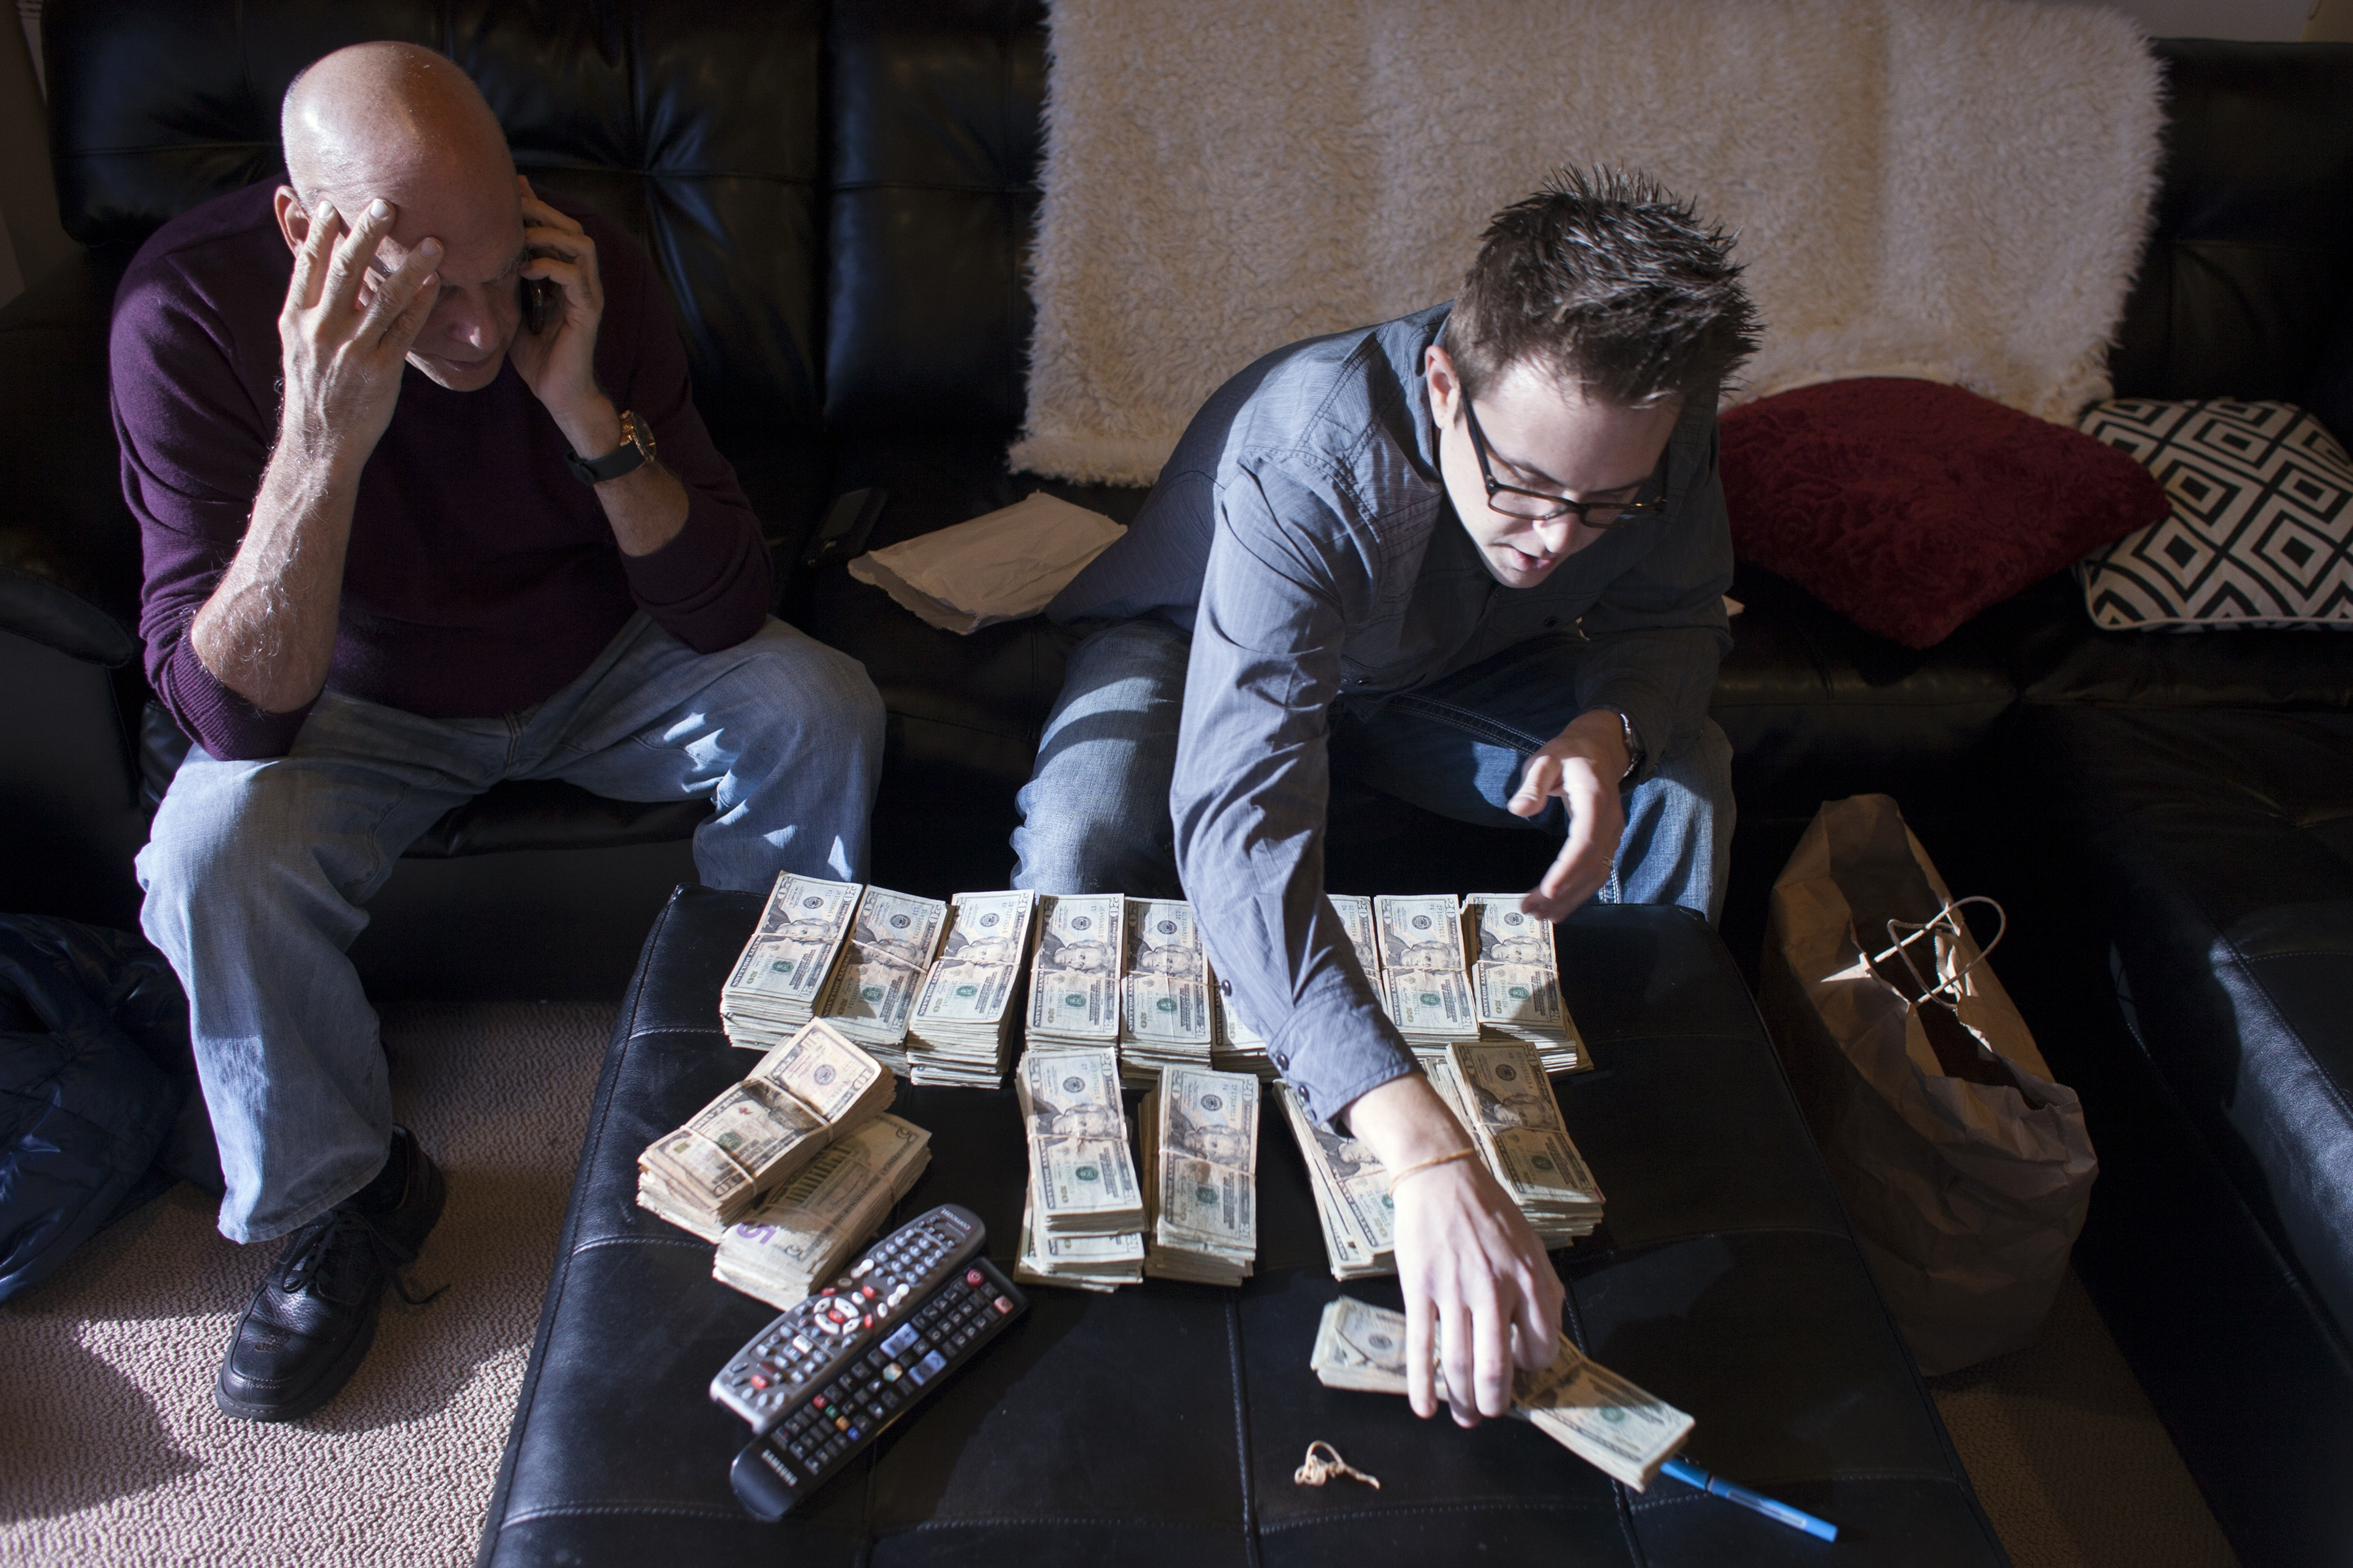 Ryan Kunkel, right, a co-owner of five marijuana dispensaries, counts tens of thousands of dollars cash beside his business partner, Joel Berman, at his office in Seattle. Banking is difficult for legal marijuana businesses.